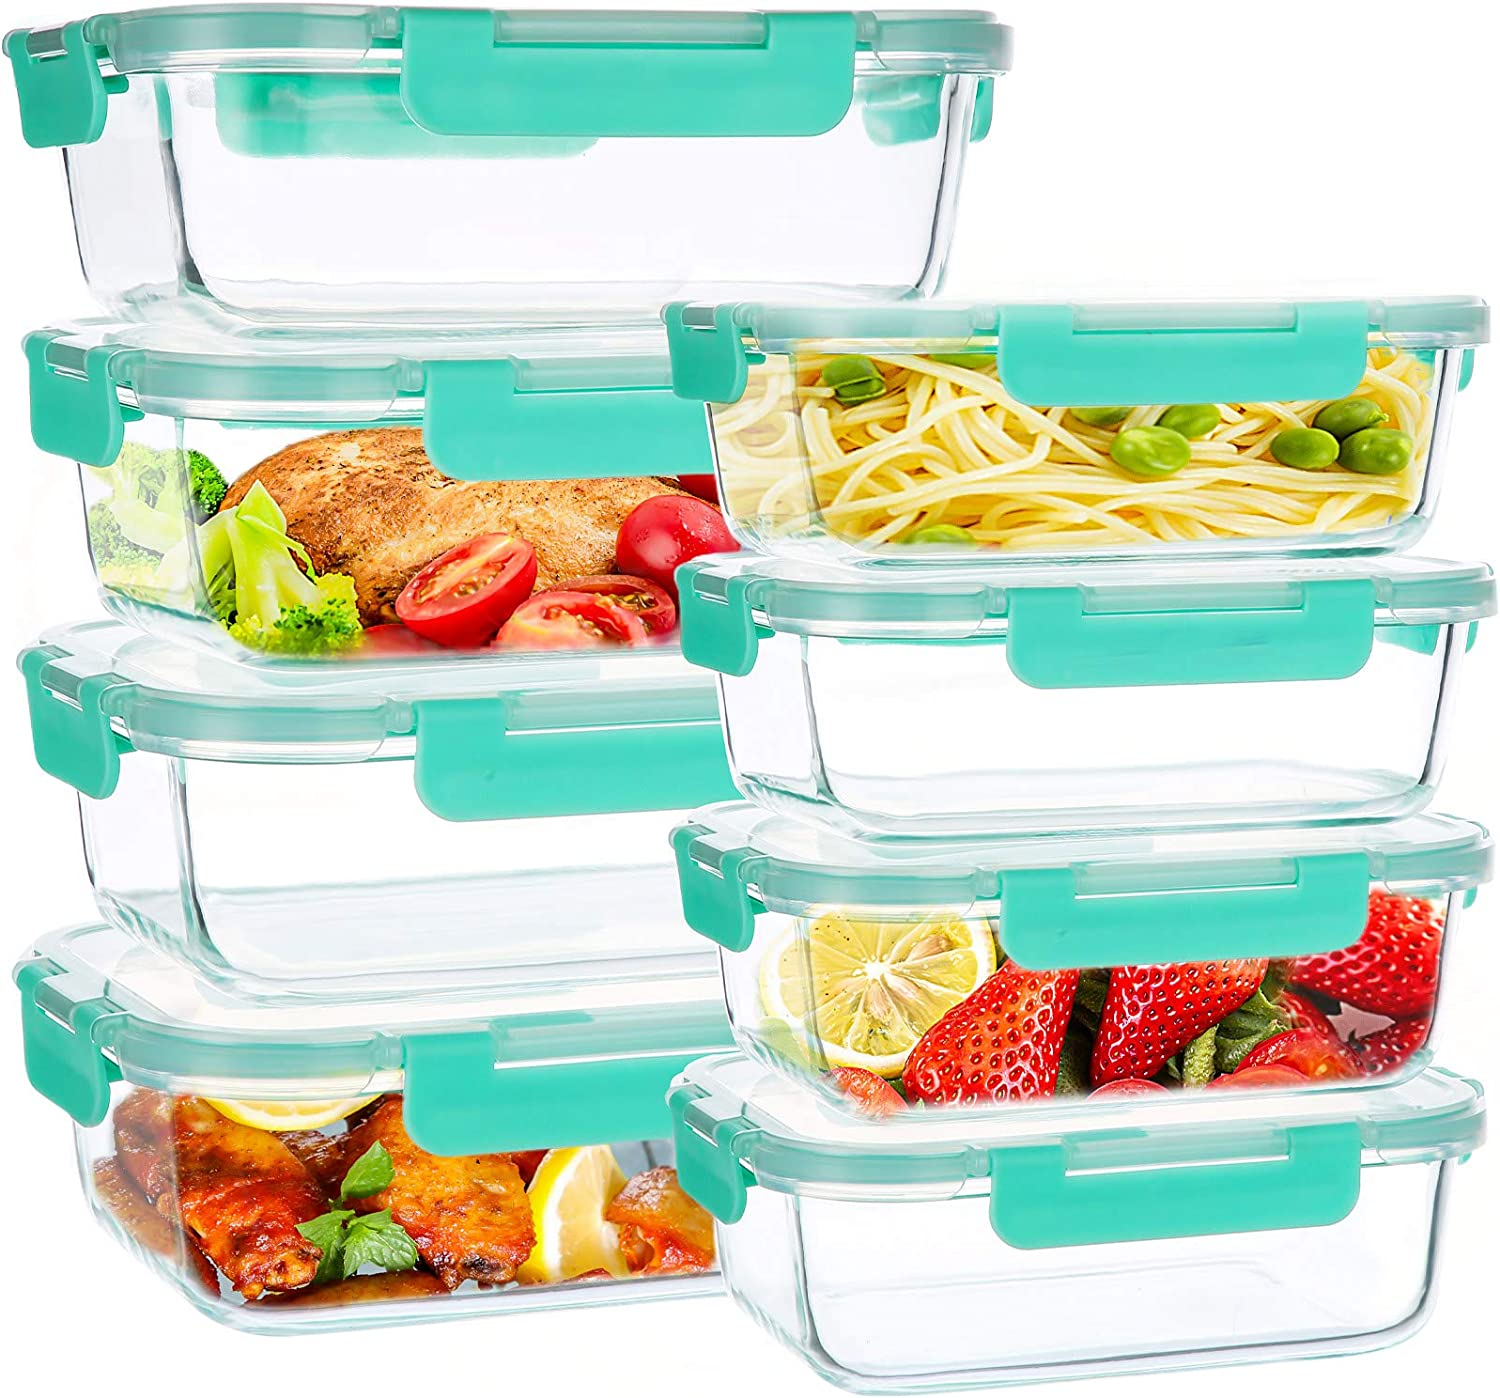 16 Piece Glass Food Storage Containers, Airtight Glass Meal Prep Containers with Smart Locking Lids, Stackable Lunch Boxes, Freezer to Microwave Oven Safe (8 Lids + 8 Bowls)